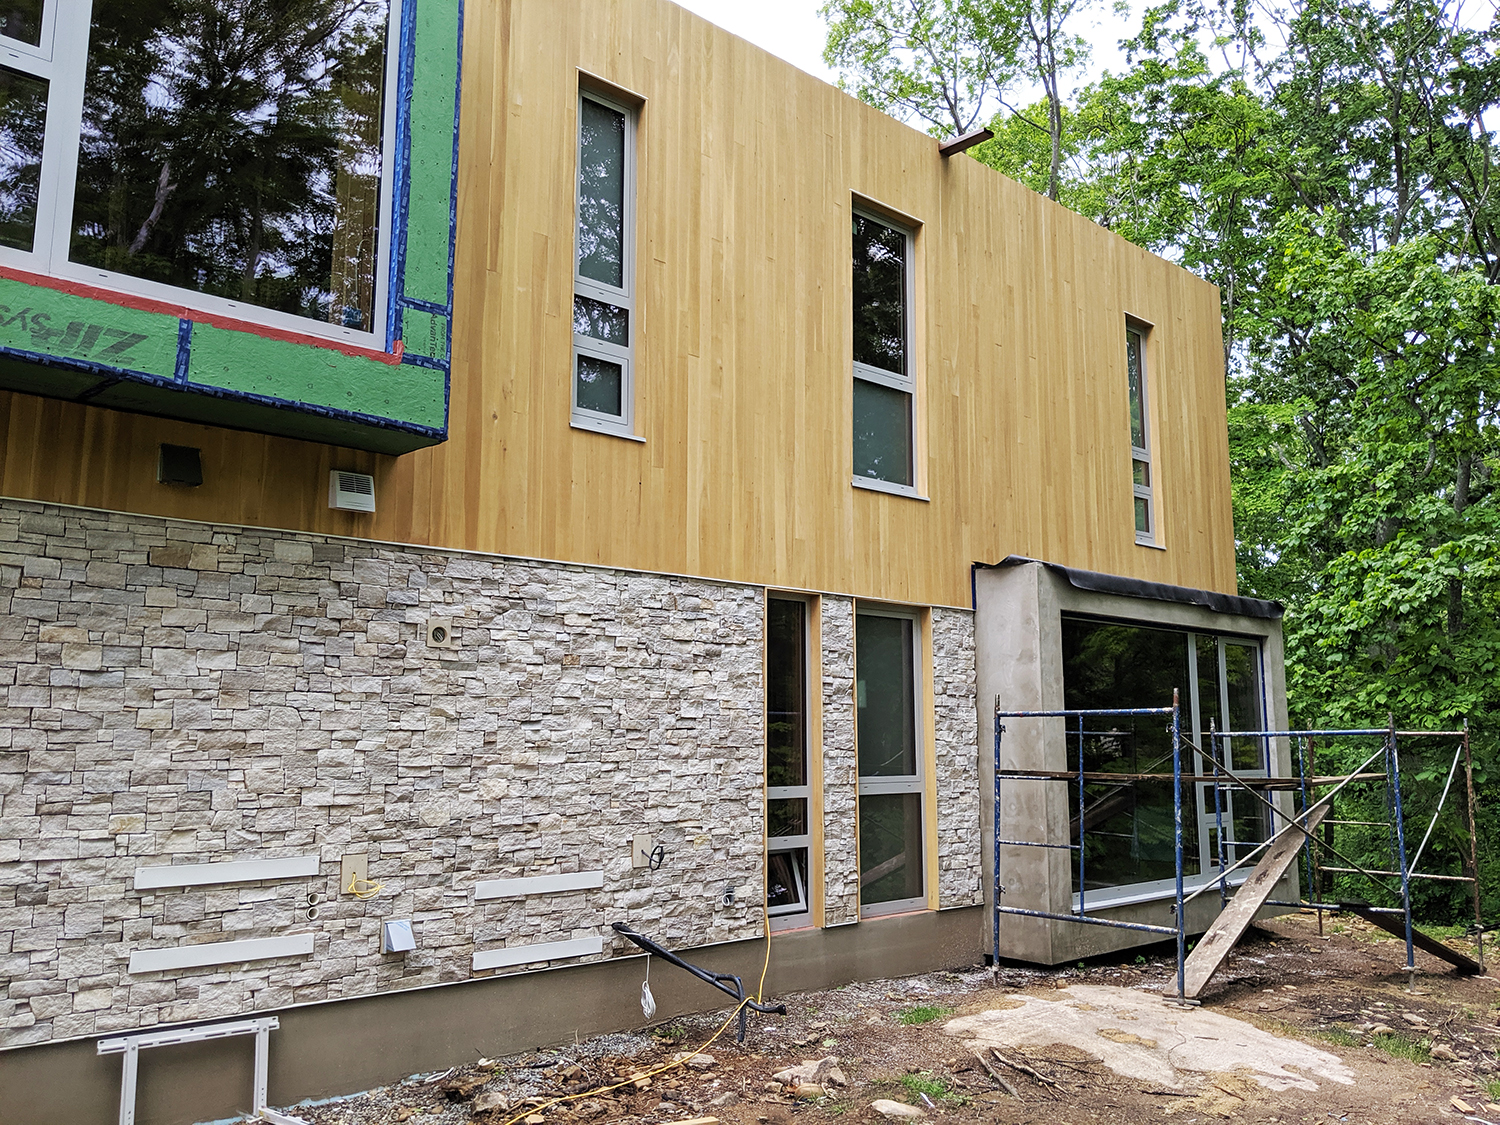 siding and stucco 6.14.19.jpg